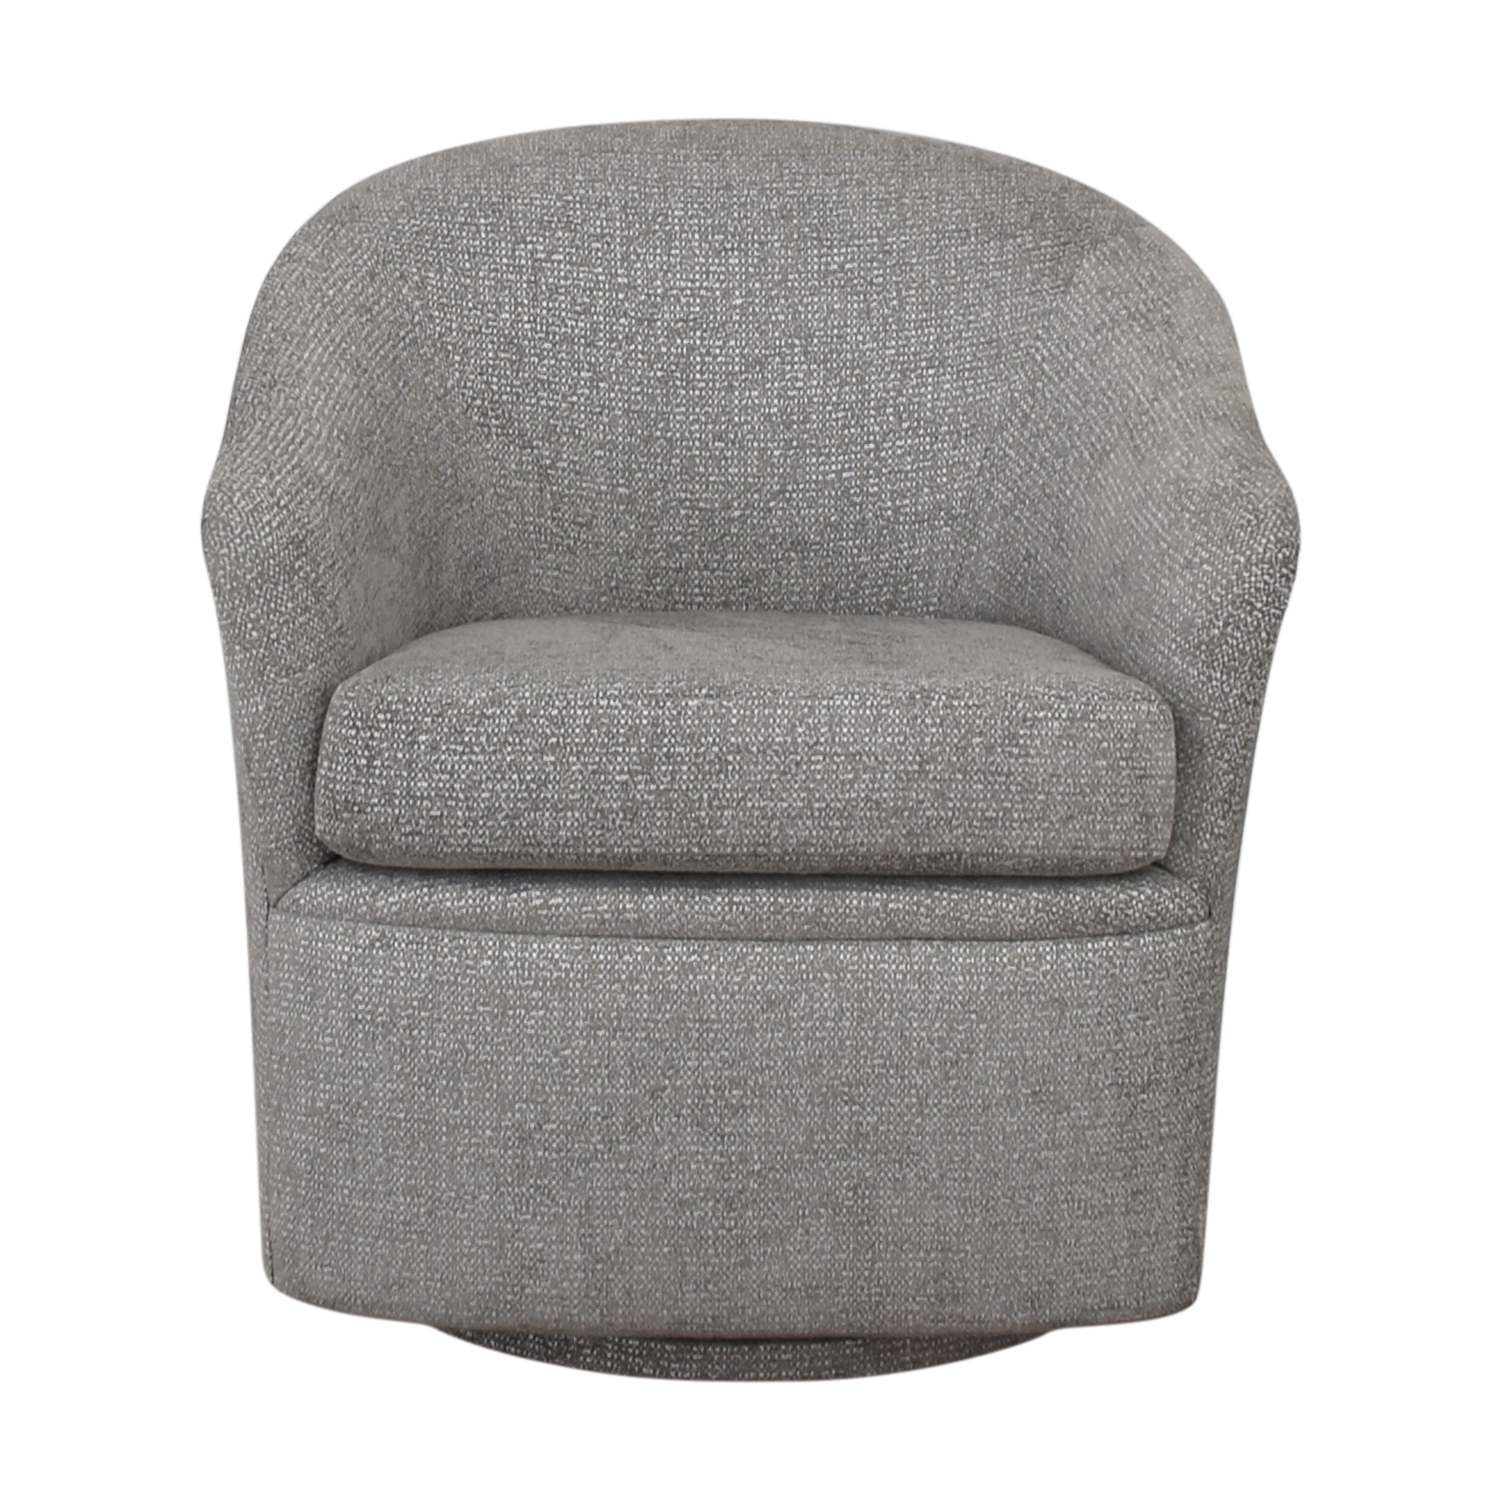 buy Furniture Masters Furniture Masters Gray Upholstered  Accent Chair online